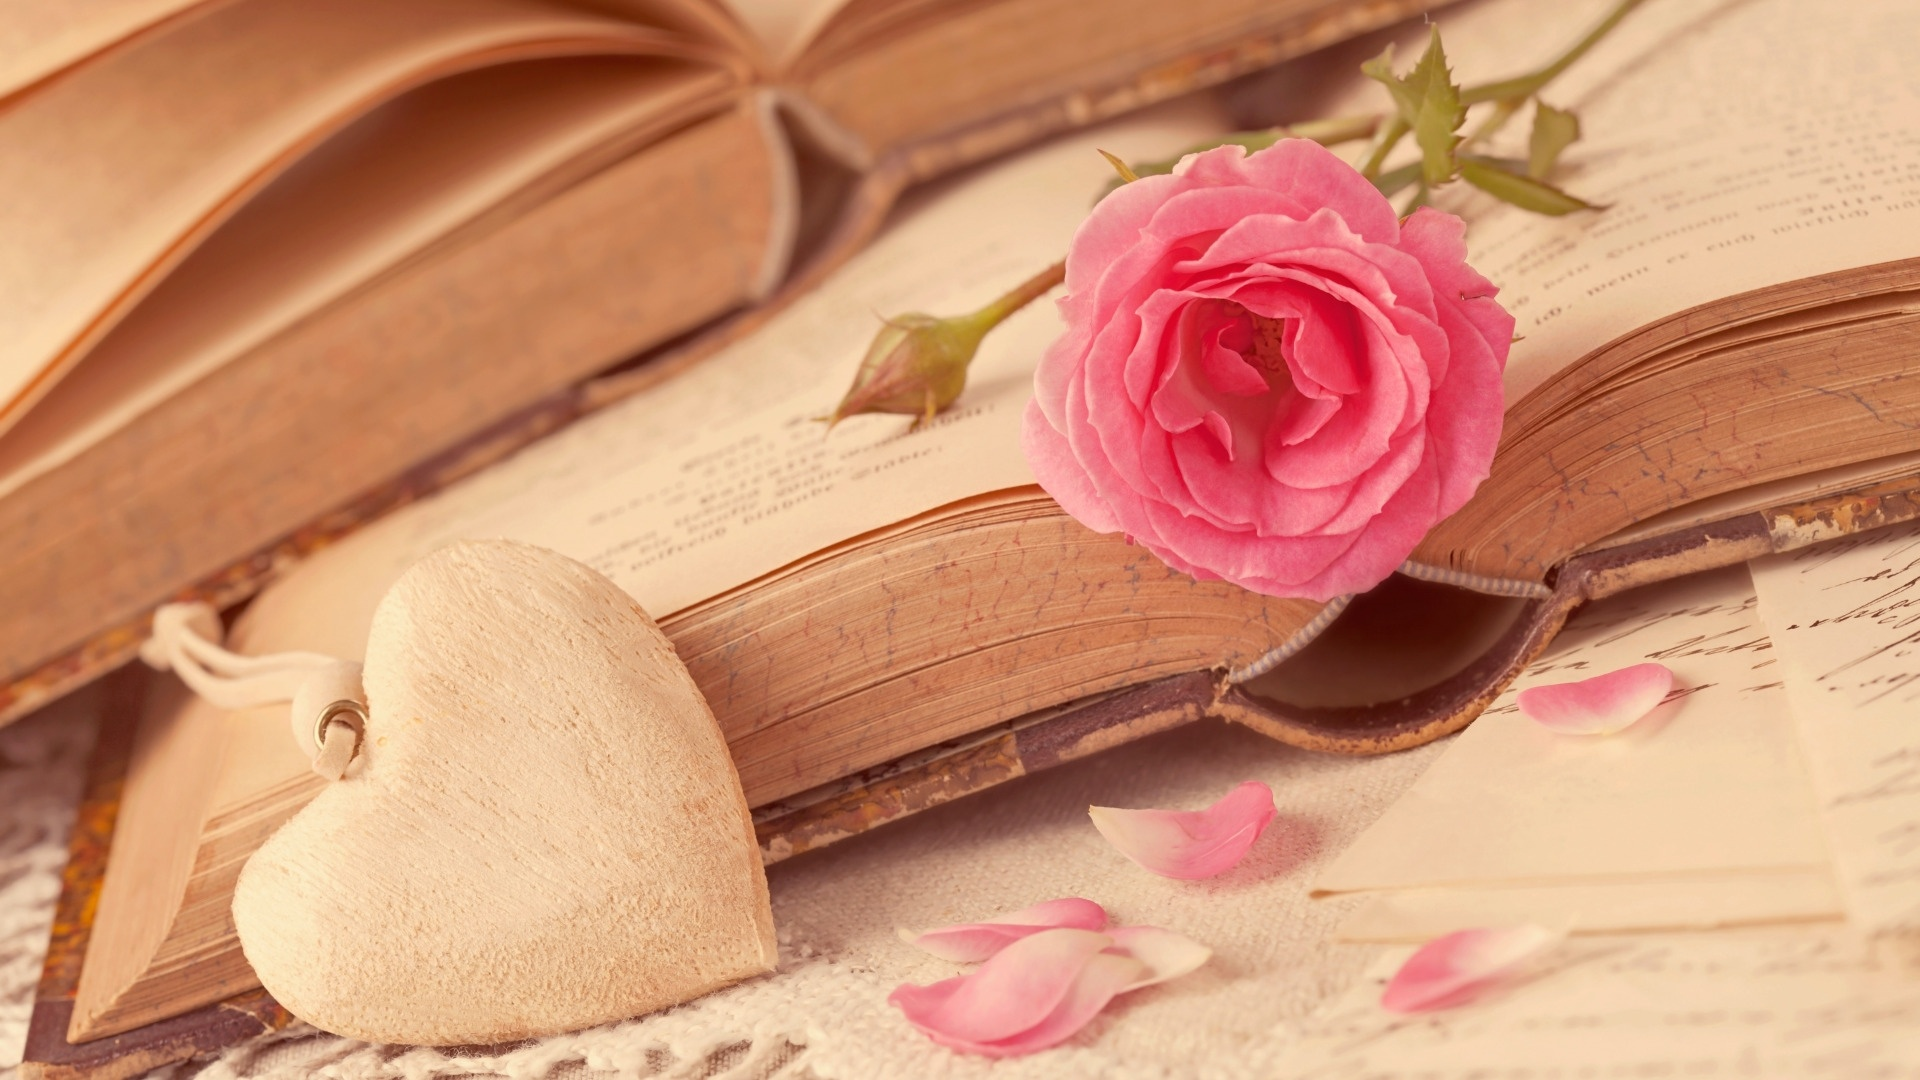 Book And Flower Wallpaper theme